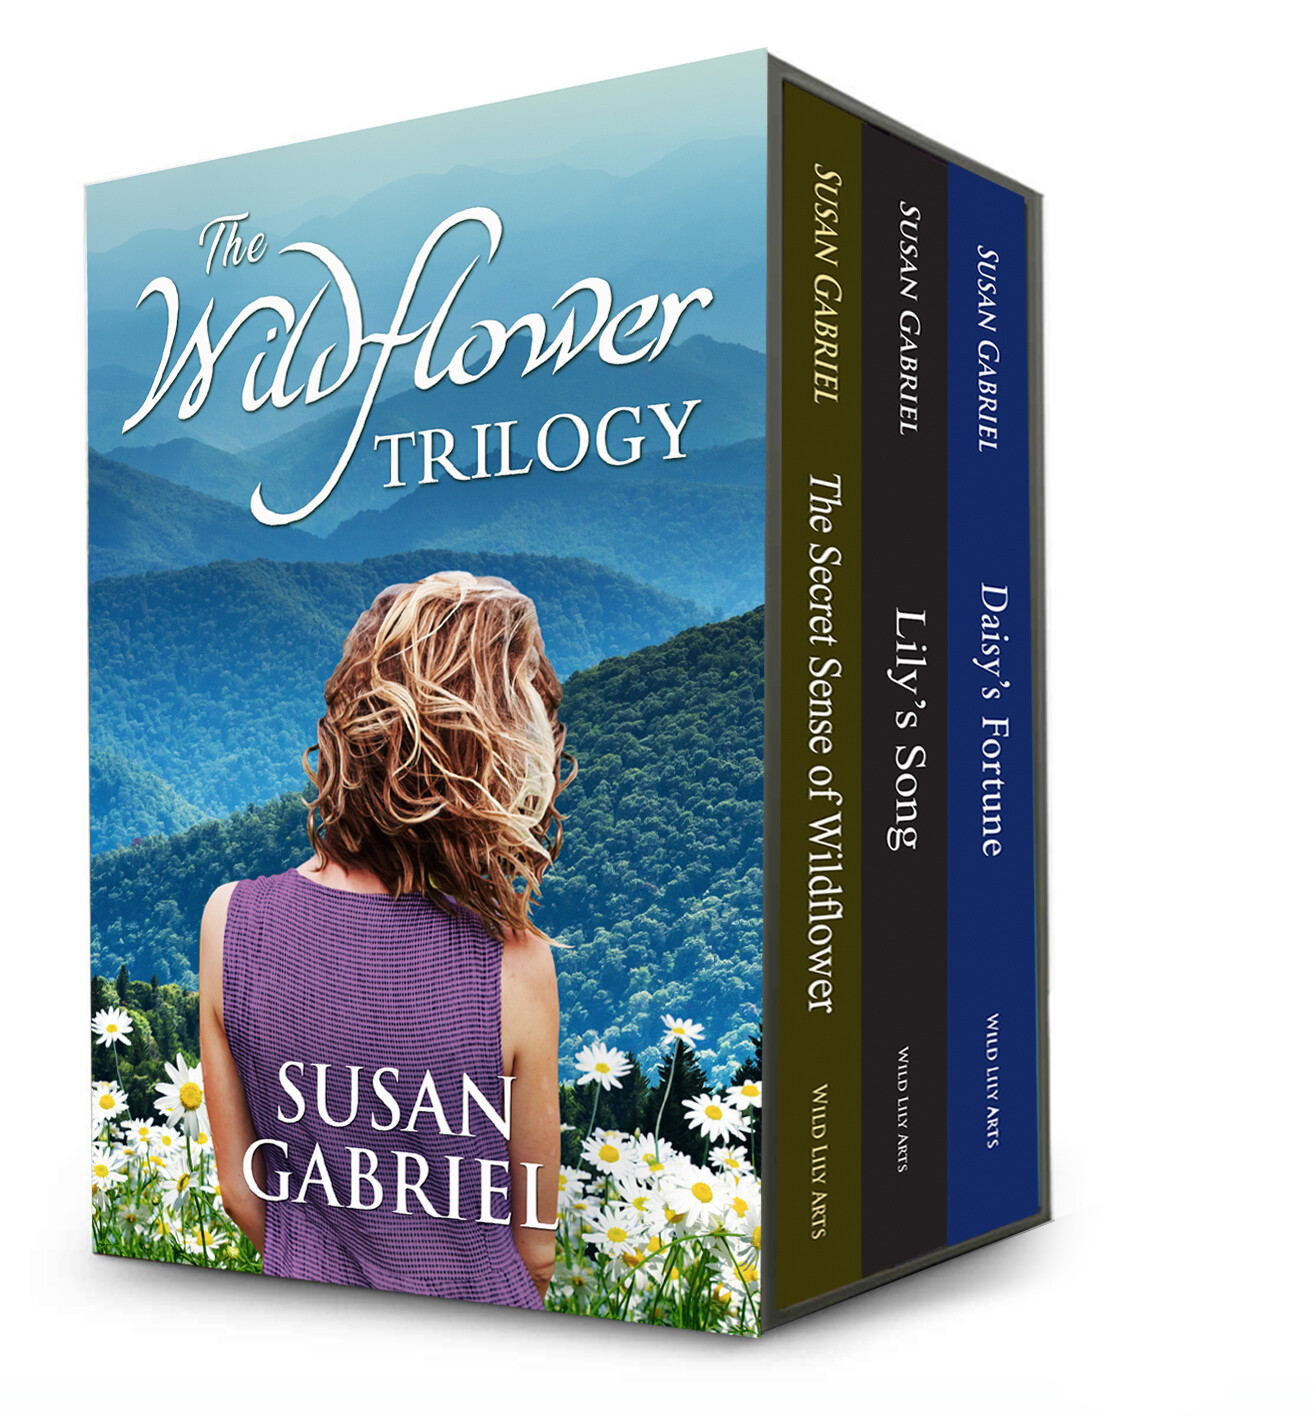 The Wildflower Trilogy - paperback, autographed by the author